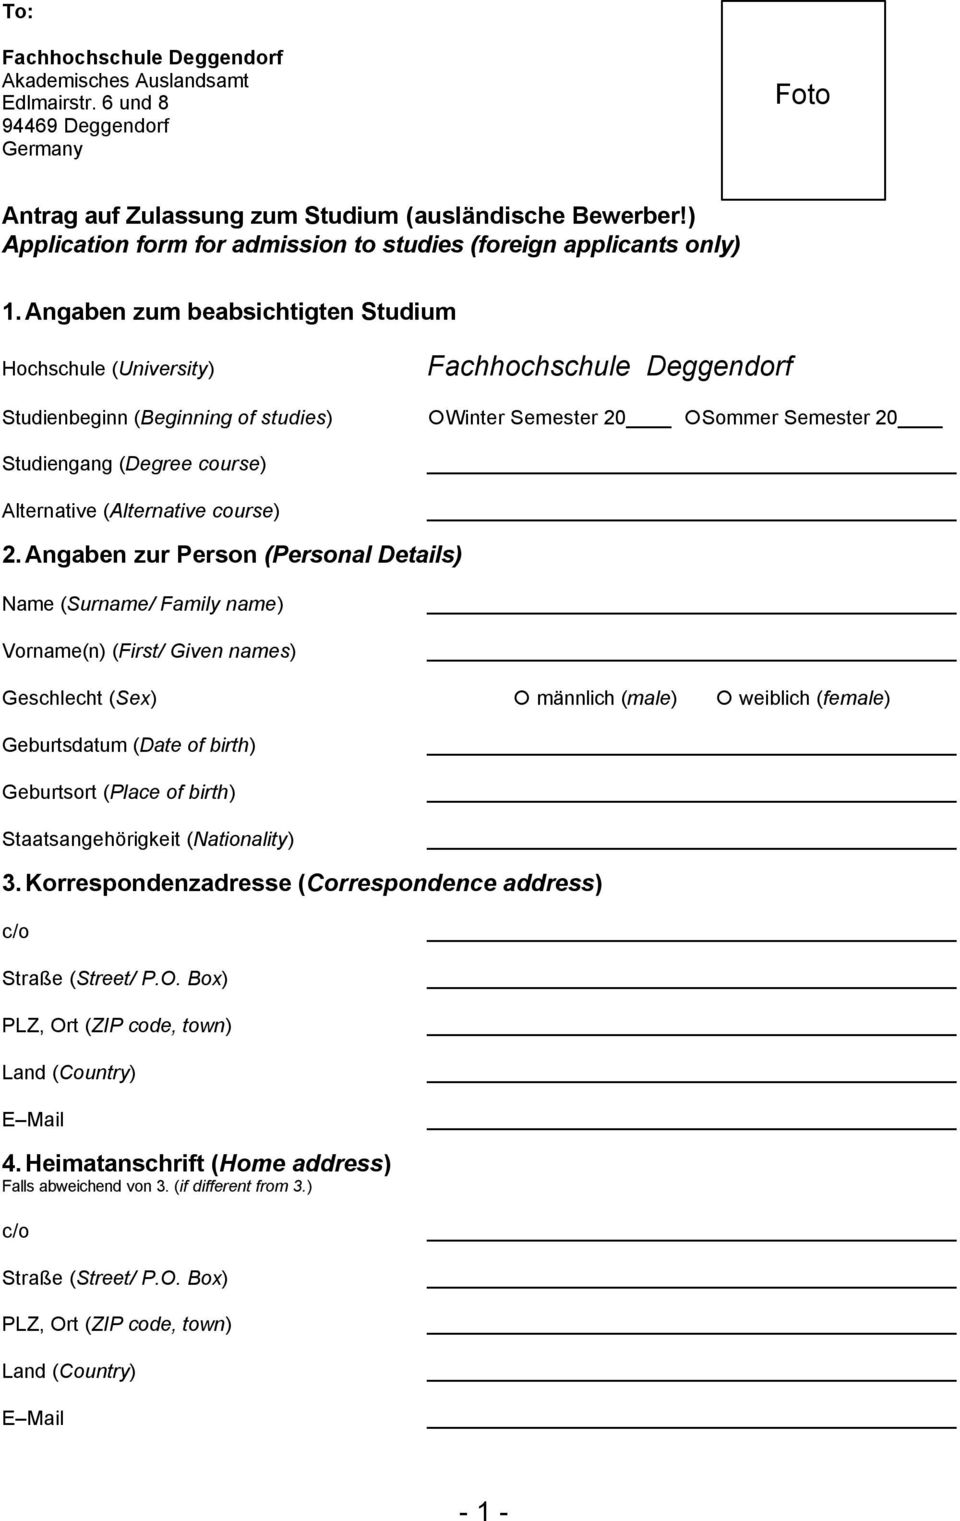 Angaben zum beabsichtigten Studium Hochschule (University) Studienbeginn (Beginning of studies) Studiengang (Degree course) Alternative (Alternative course) Fachhochschule Deggendorf Winter Semester